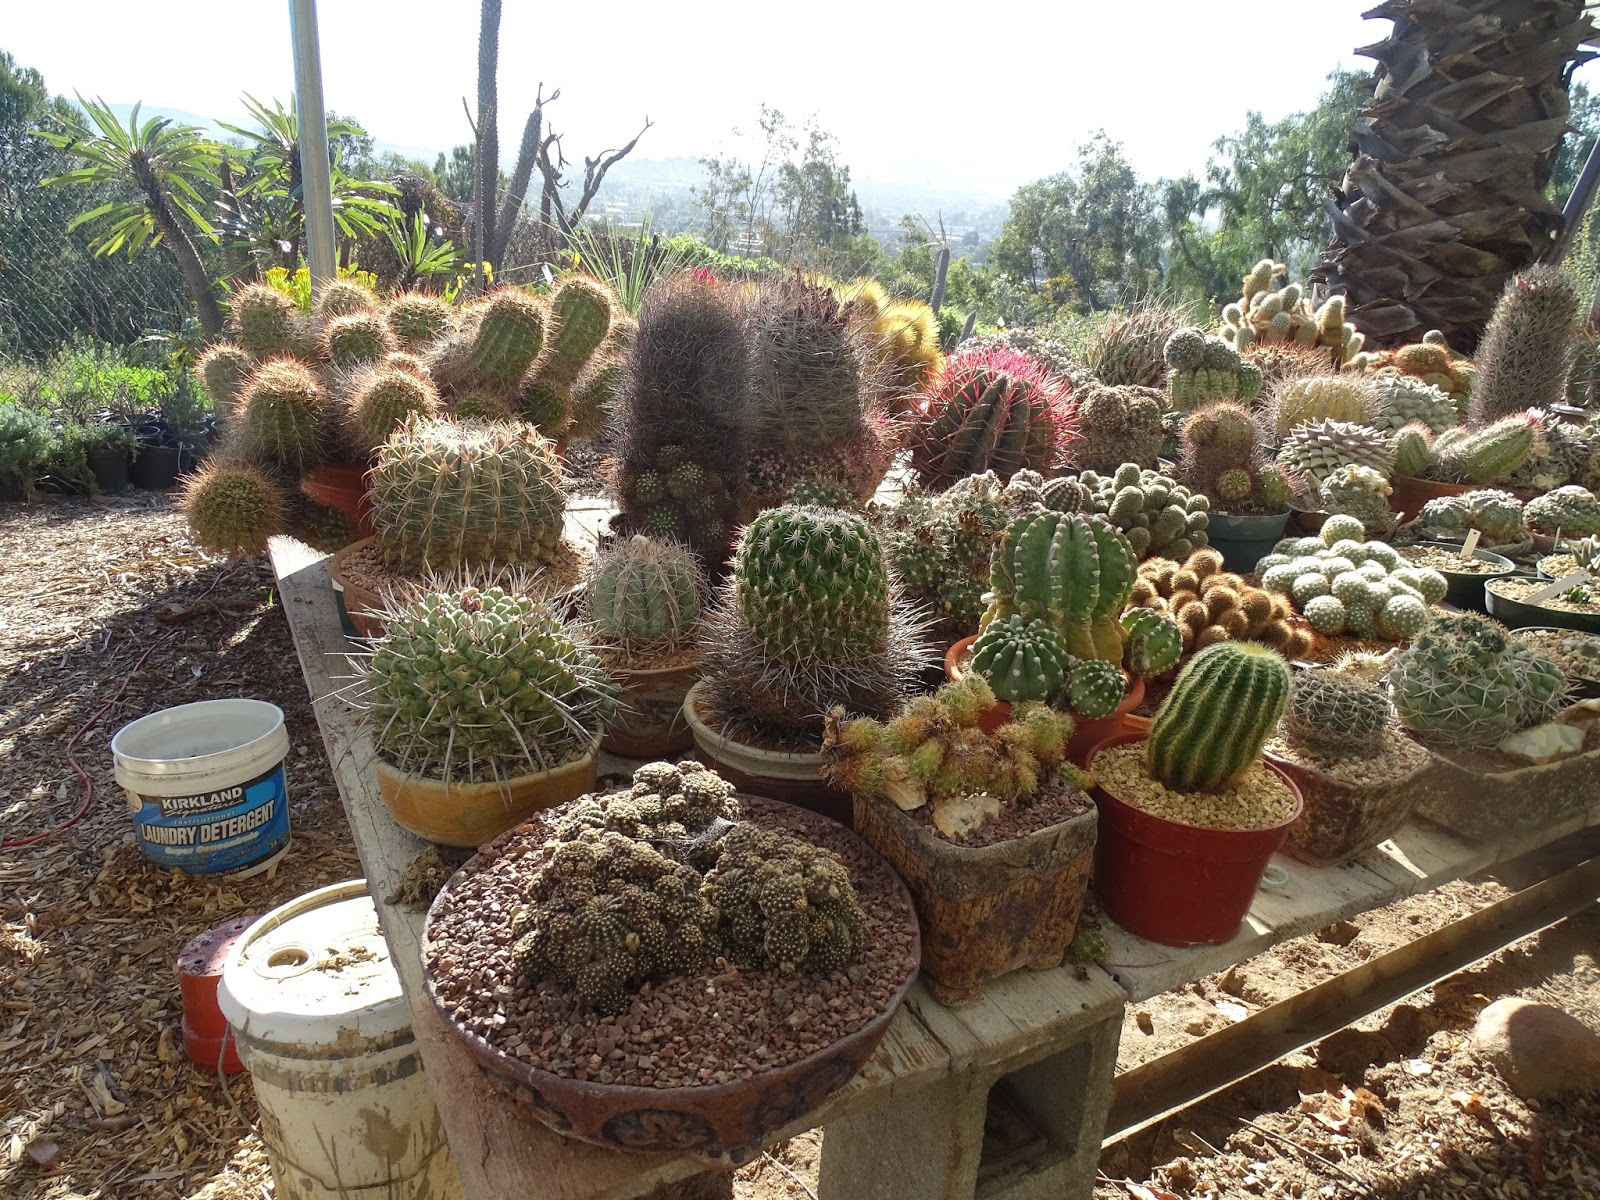 Cacti And Other Succulents Grown To Such Large Sizes Looking So Healthy Do Linger A Bit Over These Realize That Each Of Thousands